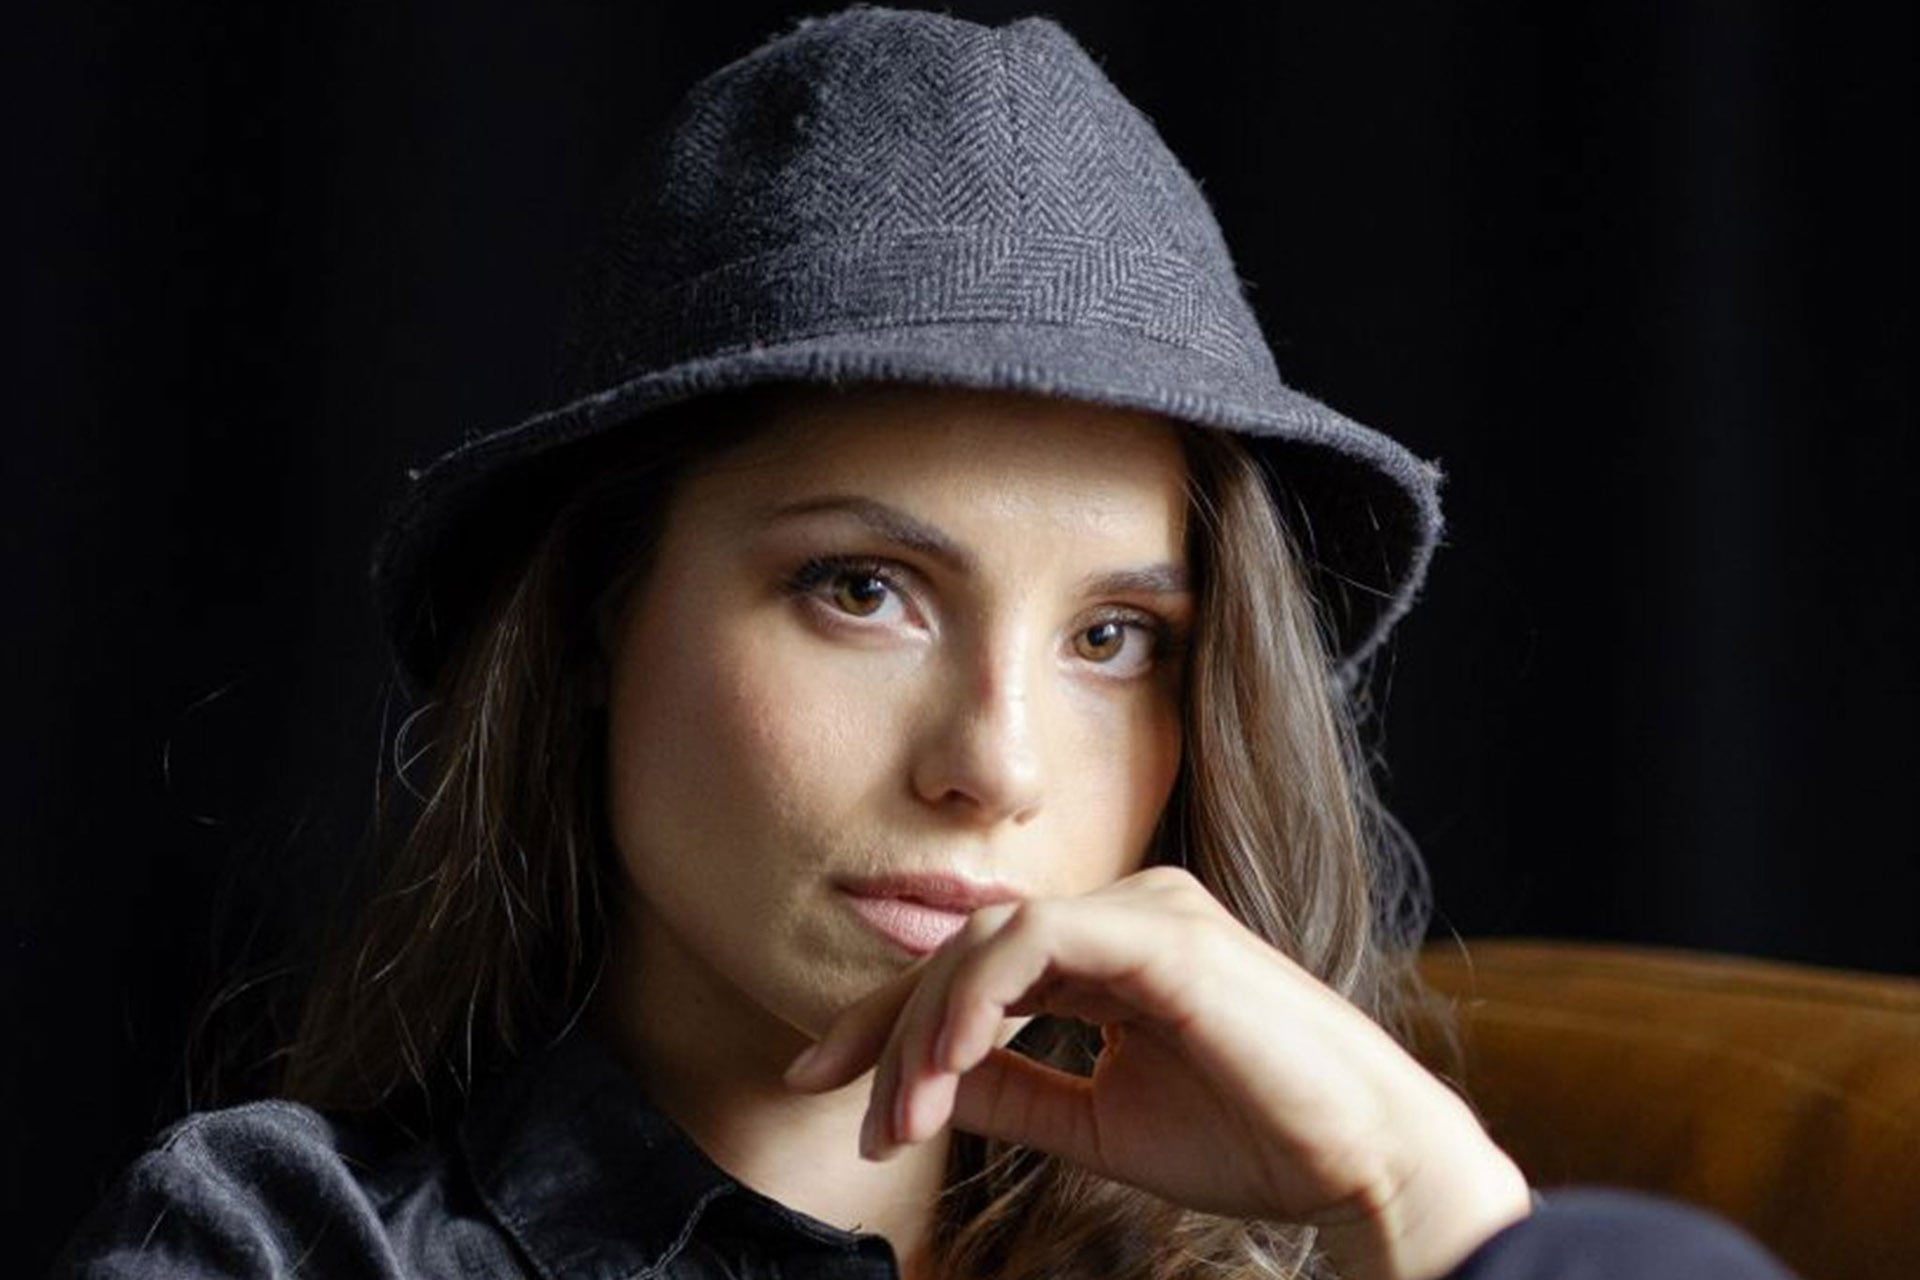 1920x1280 - Charlotte Riley Wallpapers 5